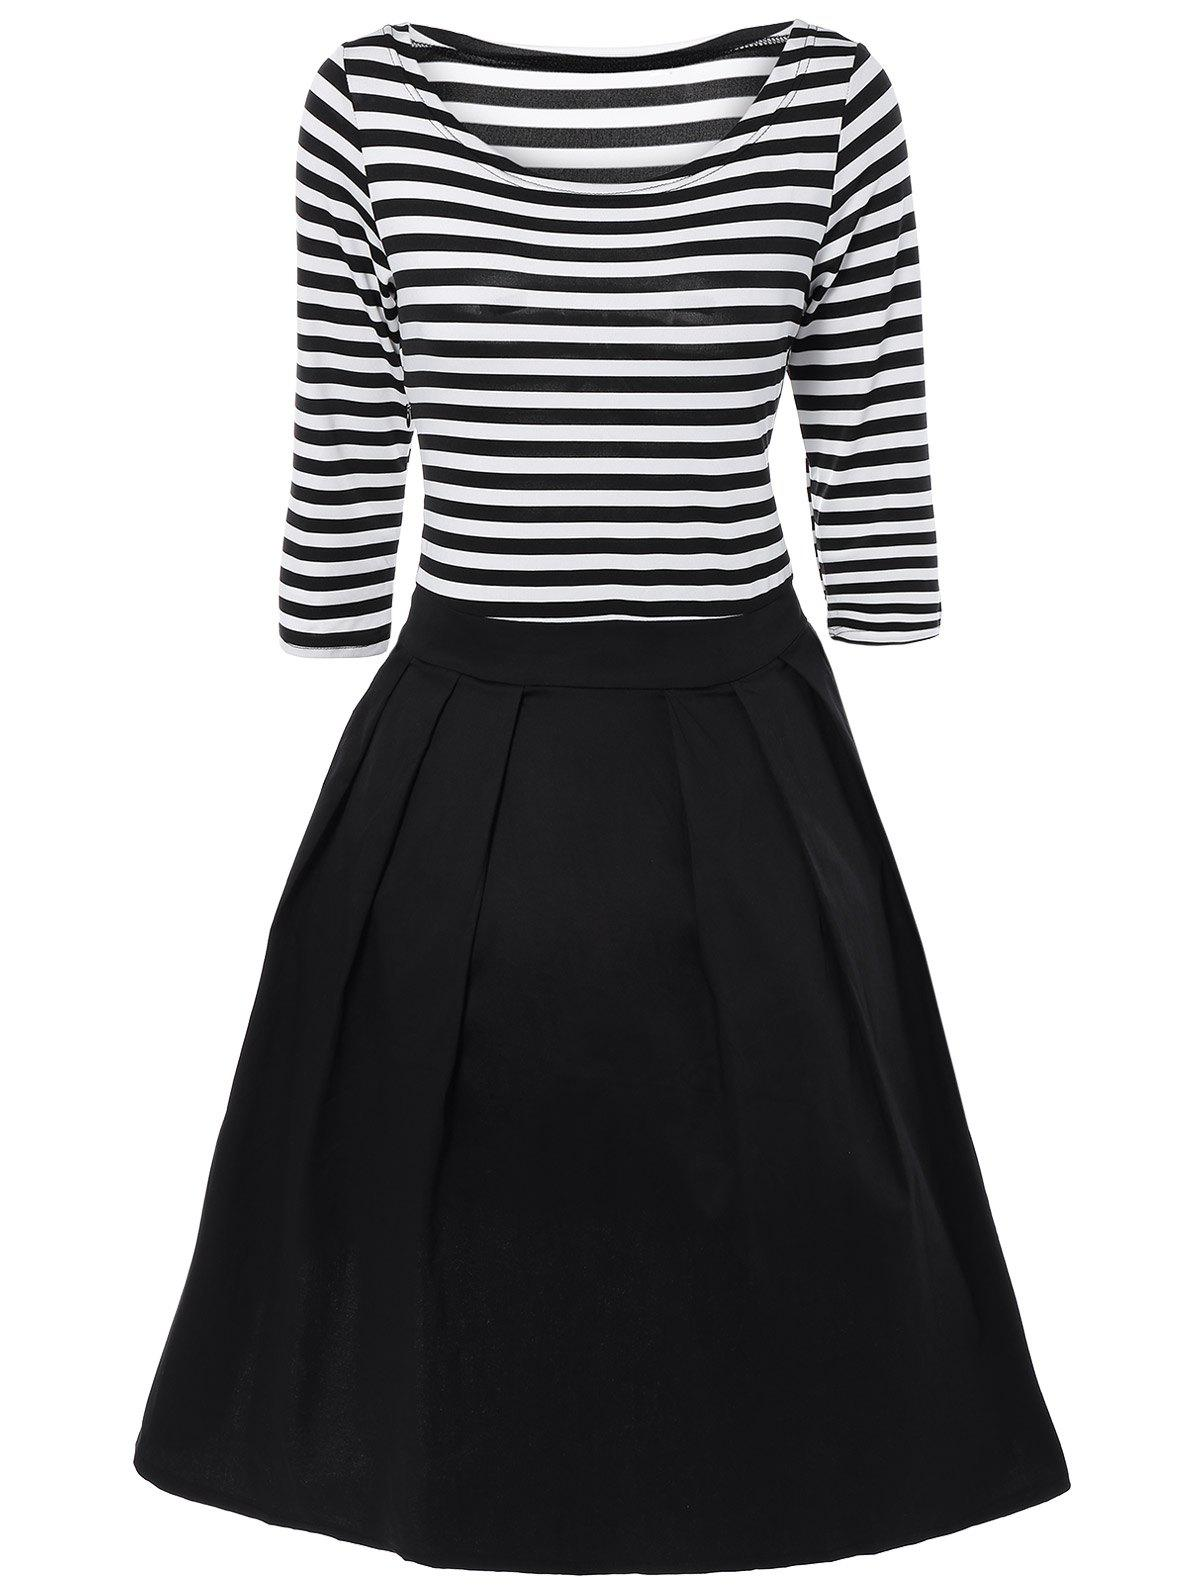 Buy Striped Pleated A Line Dress